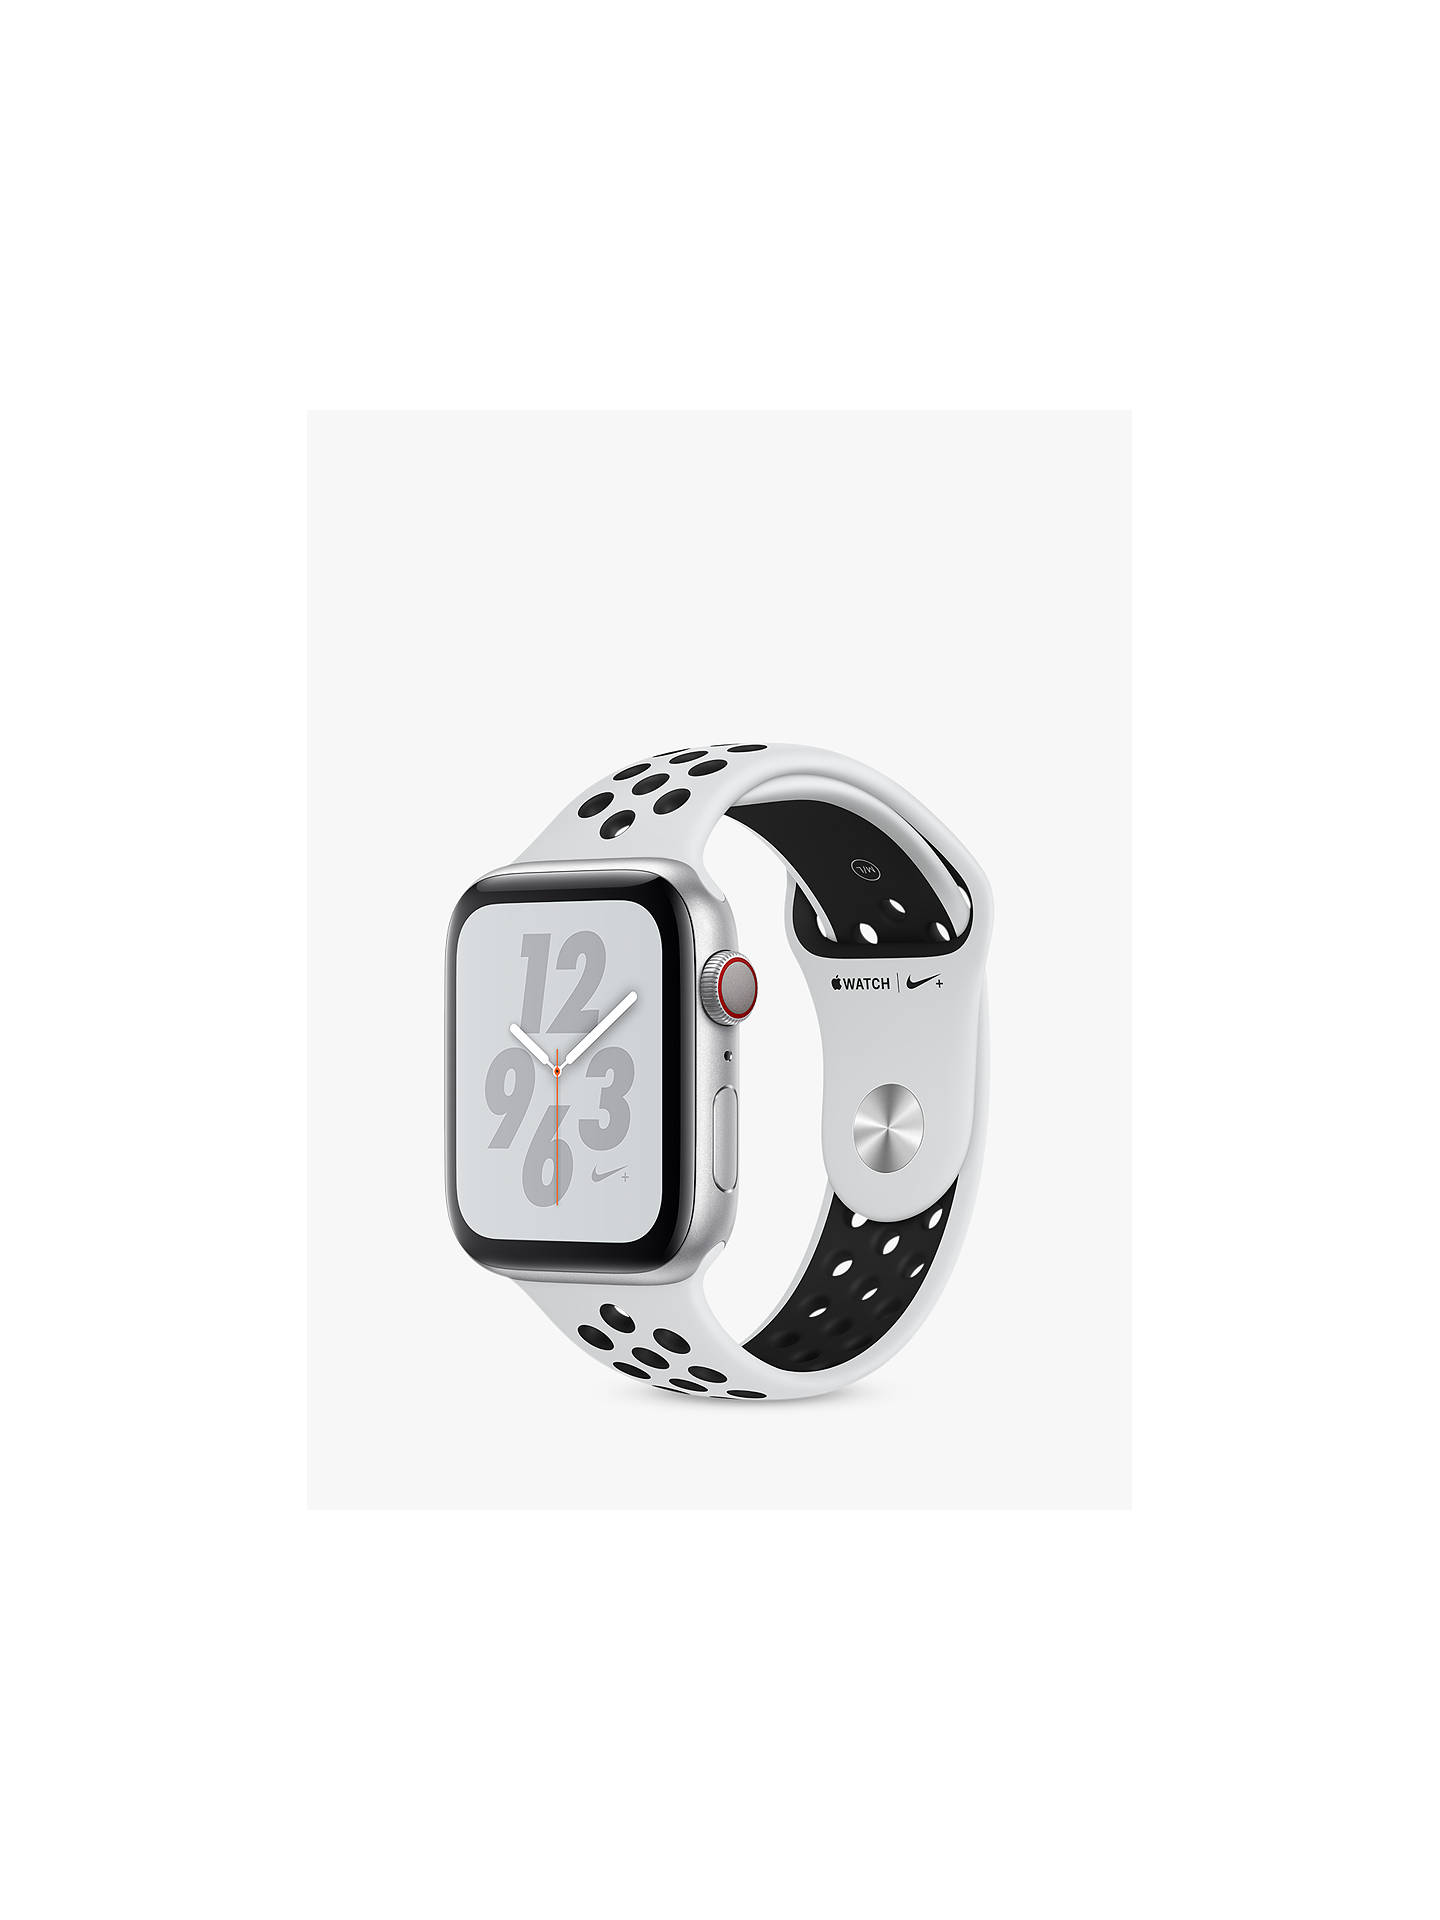 Buy Apple Watch Nike+, Series 4, GPS and Cellular, 44mm Platinum Aluminium Case with Nike Sport Band, White/Black Online at johnlewis.com